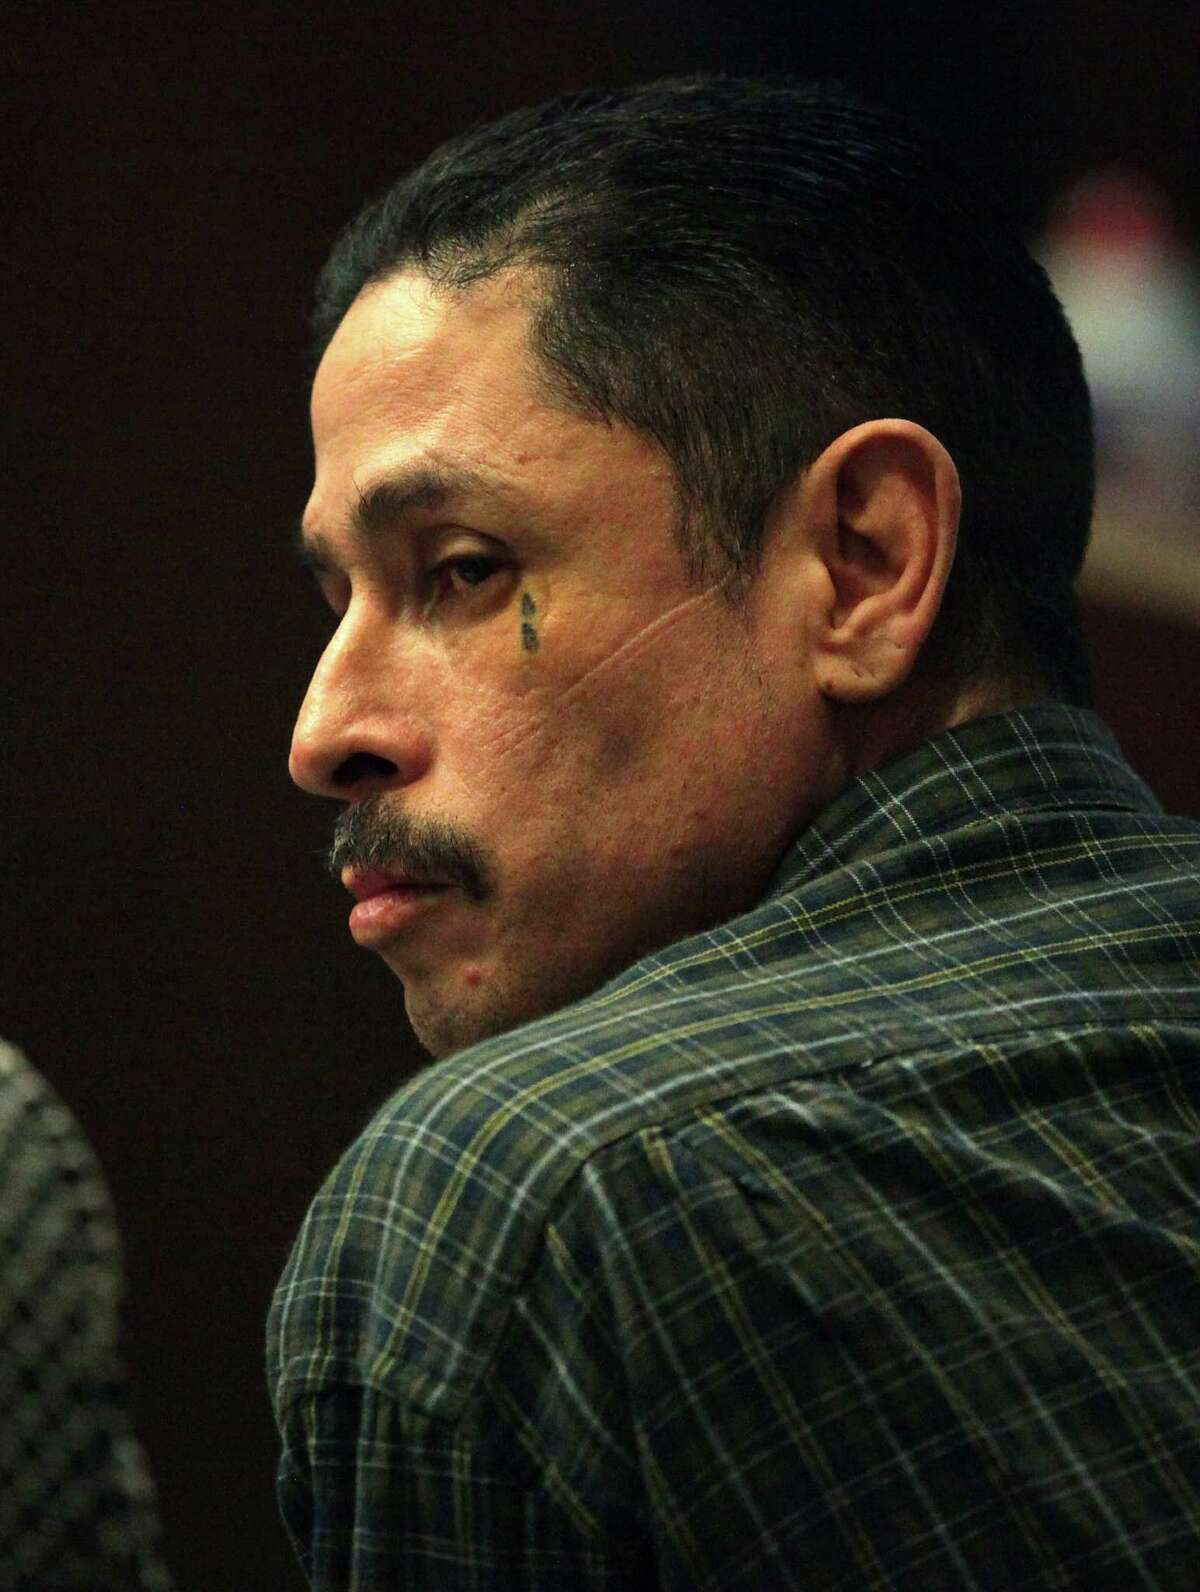 """Pretrial hearings in the trial of Bobby """"Spider"""" Moreno, in Judge Ron Rangel's 239th District Court. He is accused of kidnapping a 13 year old in 2007, injecting her with drugs and leaving her tied to a bed for weeks as he and his brother, Juan Moreno, charged neighborhood men $25 each to rape her. Juan has already been charged and received four life terms in Dec. 2010. Tuesday, July 10, 2012."""